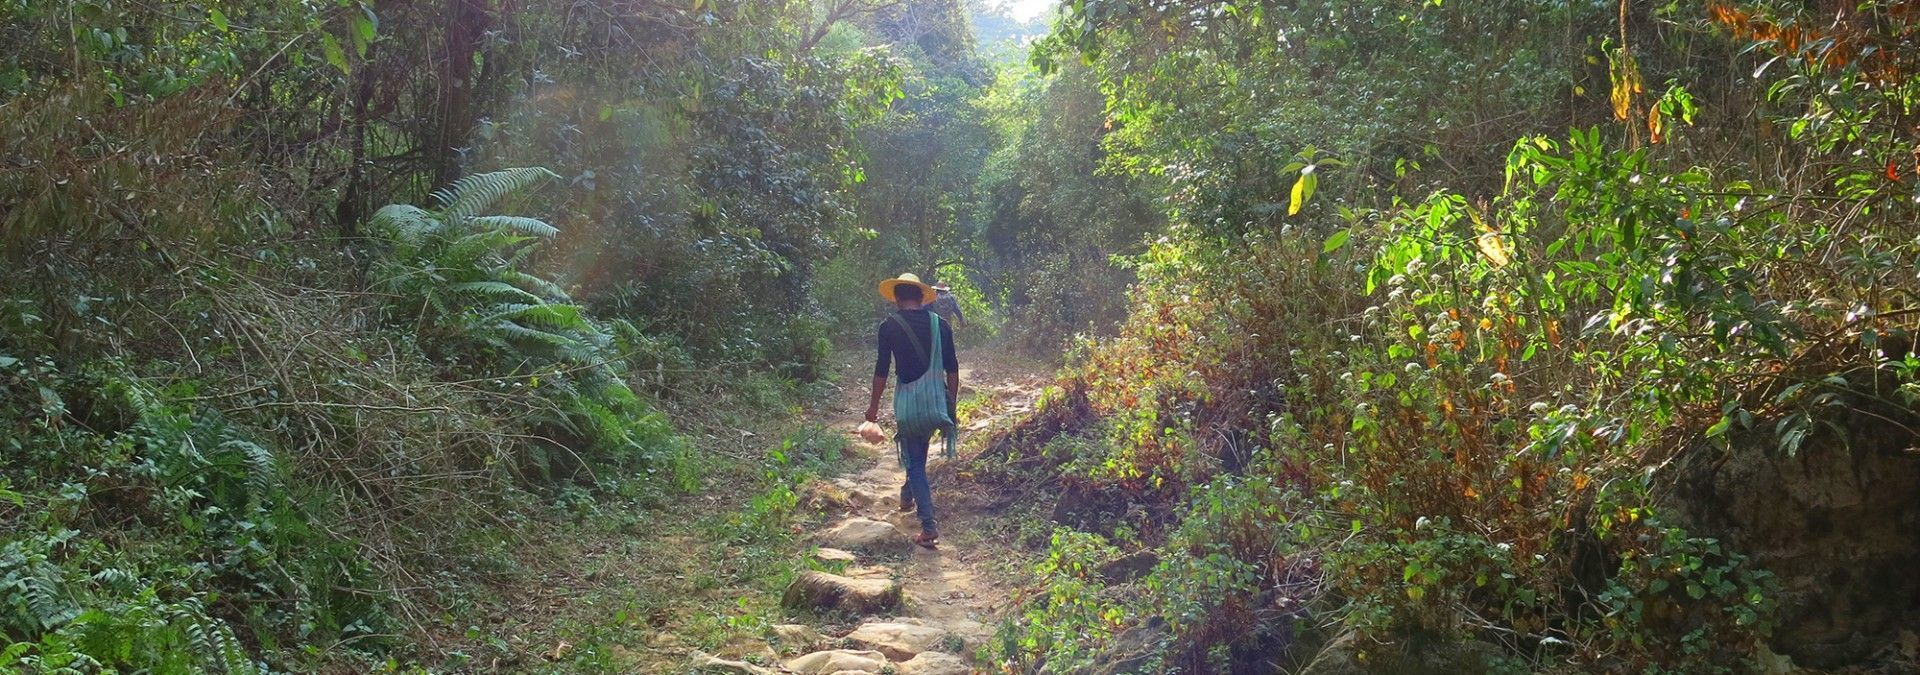 Trekking_through_forested_hills_Burma.jpg